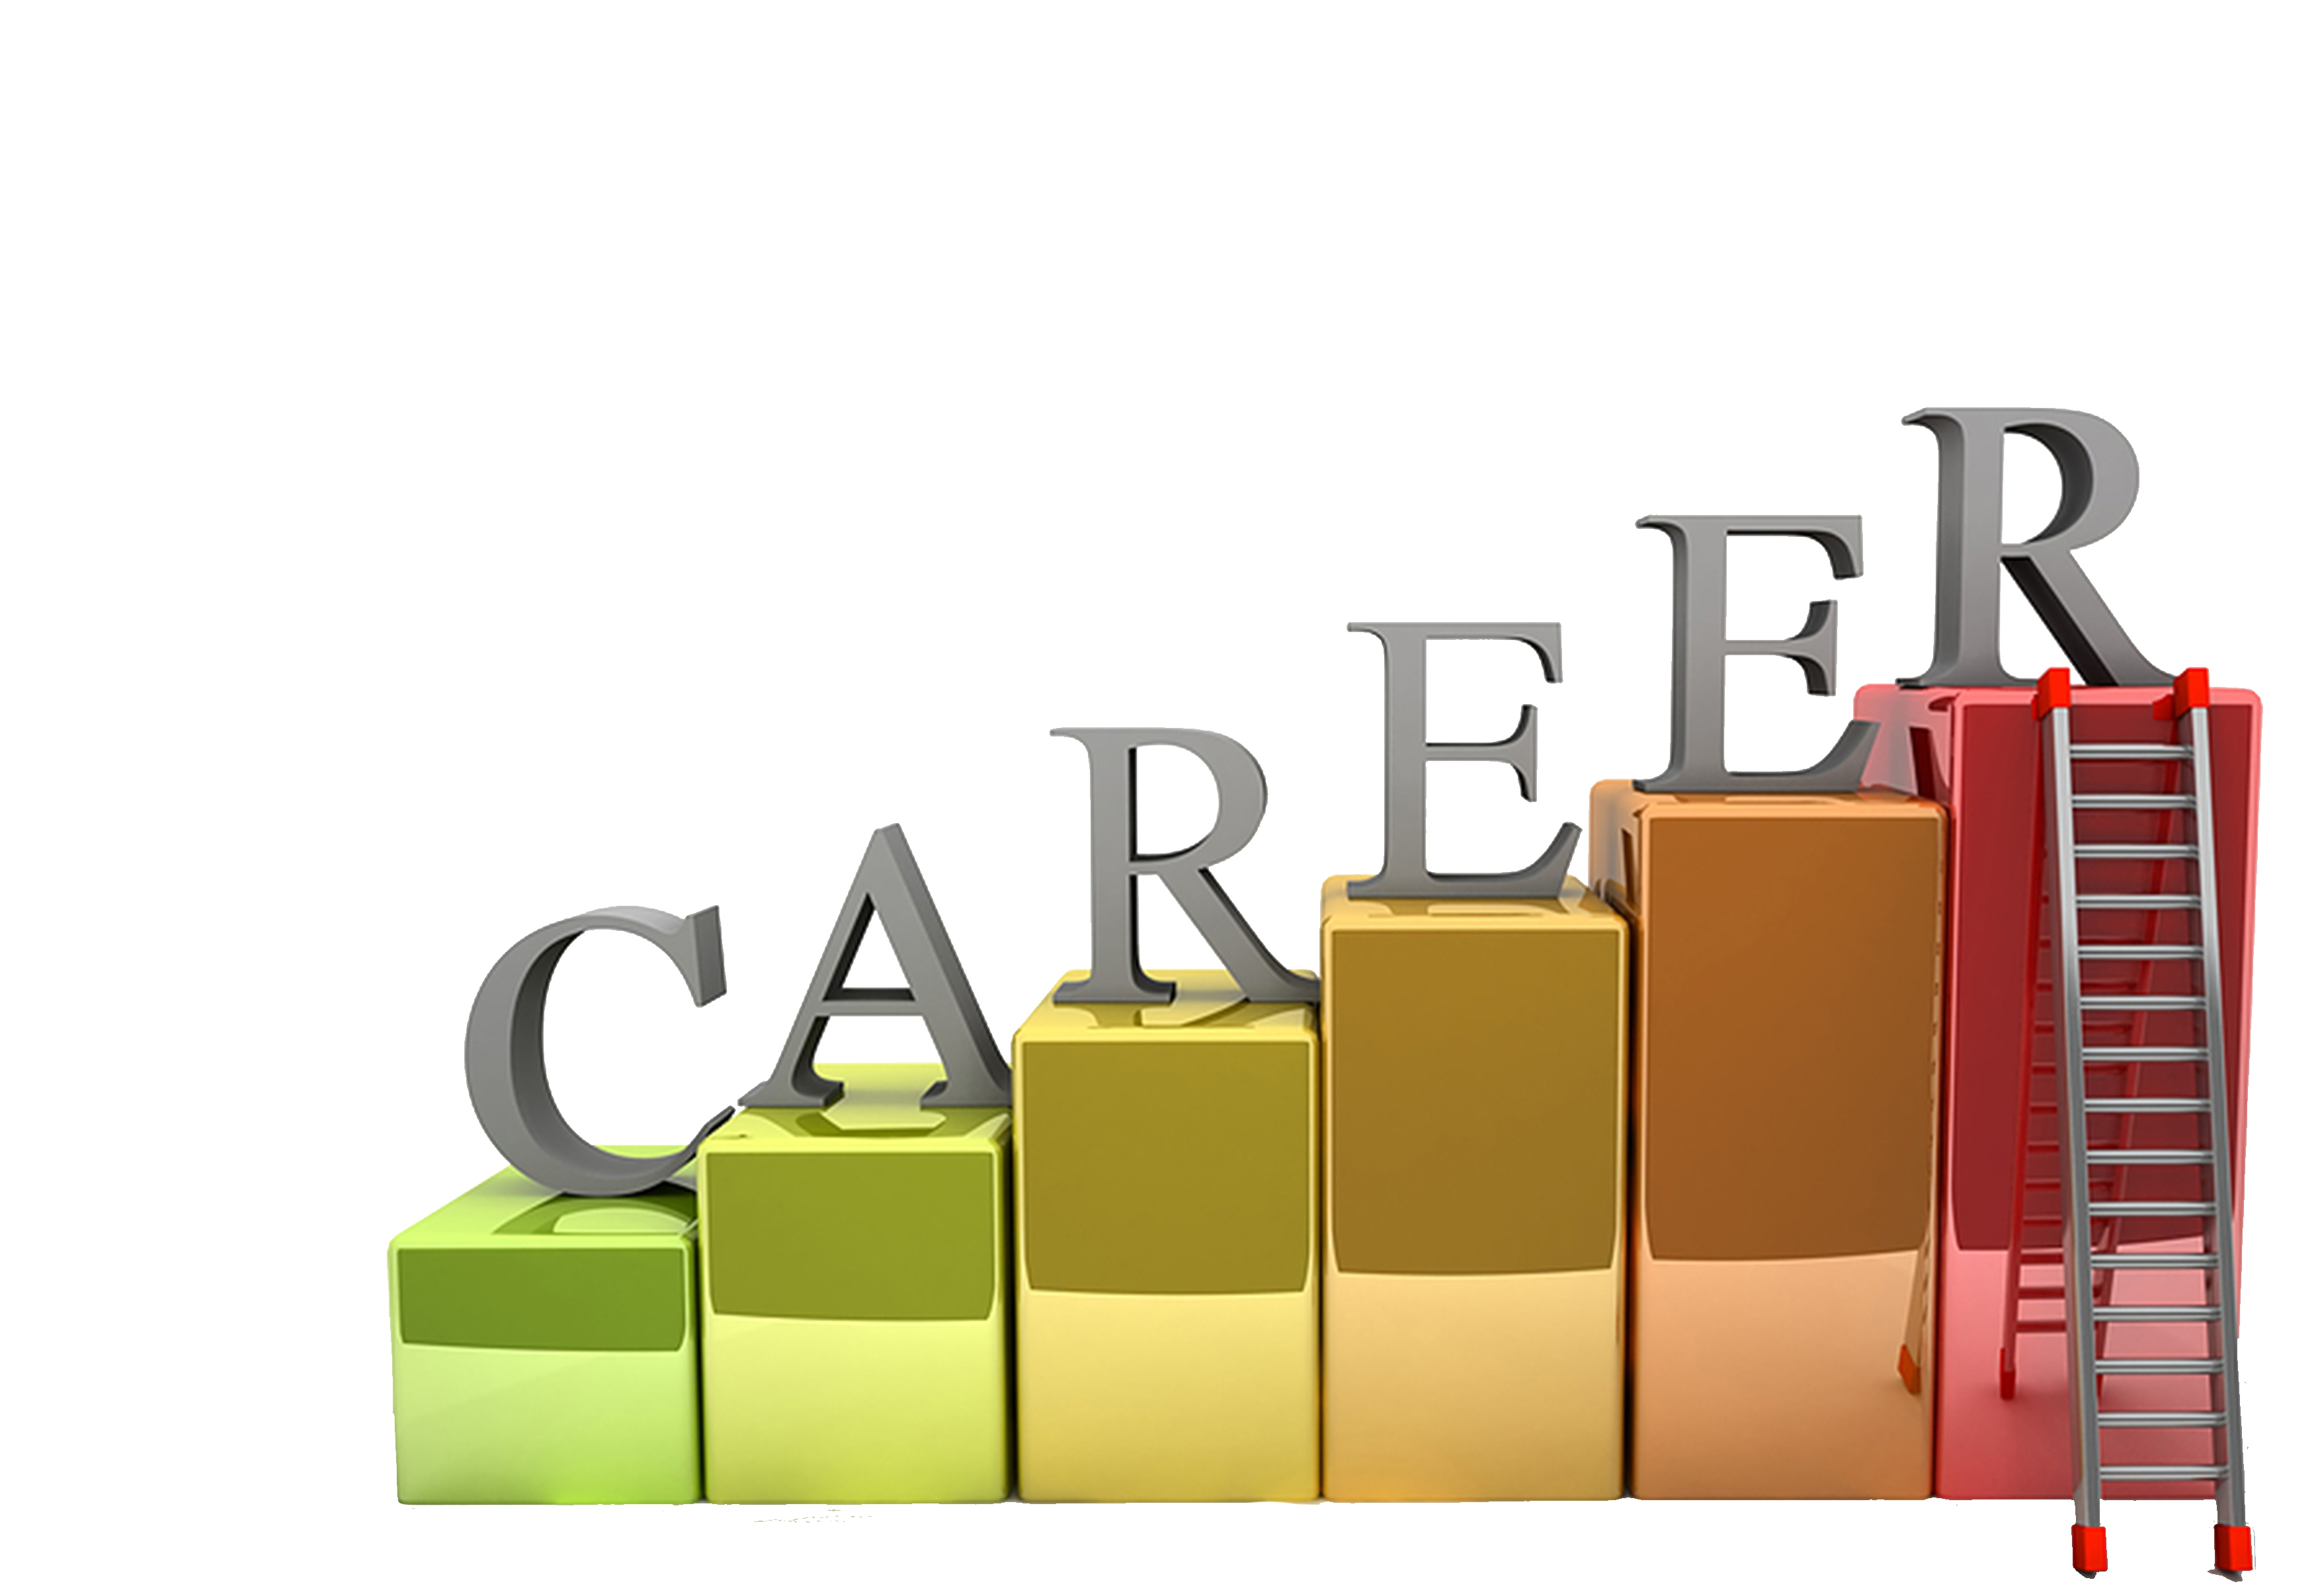 Cliparts x making the. Ladder clipart career ladder